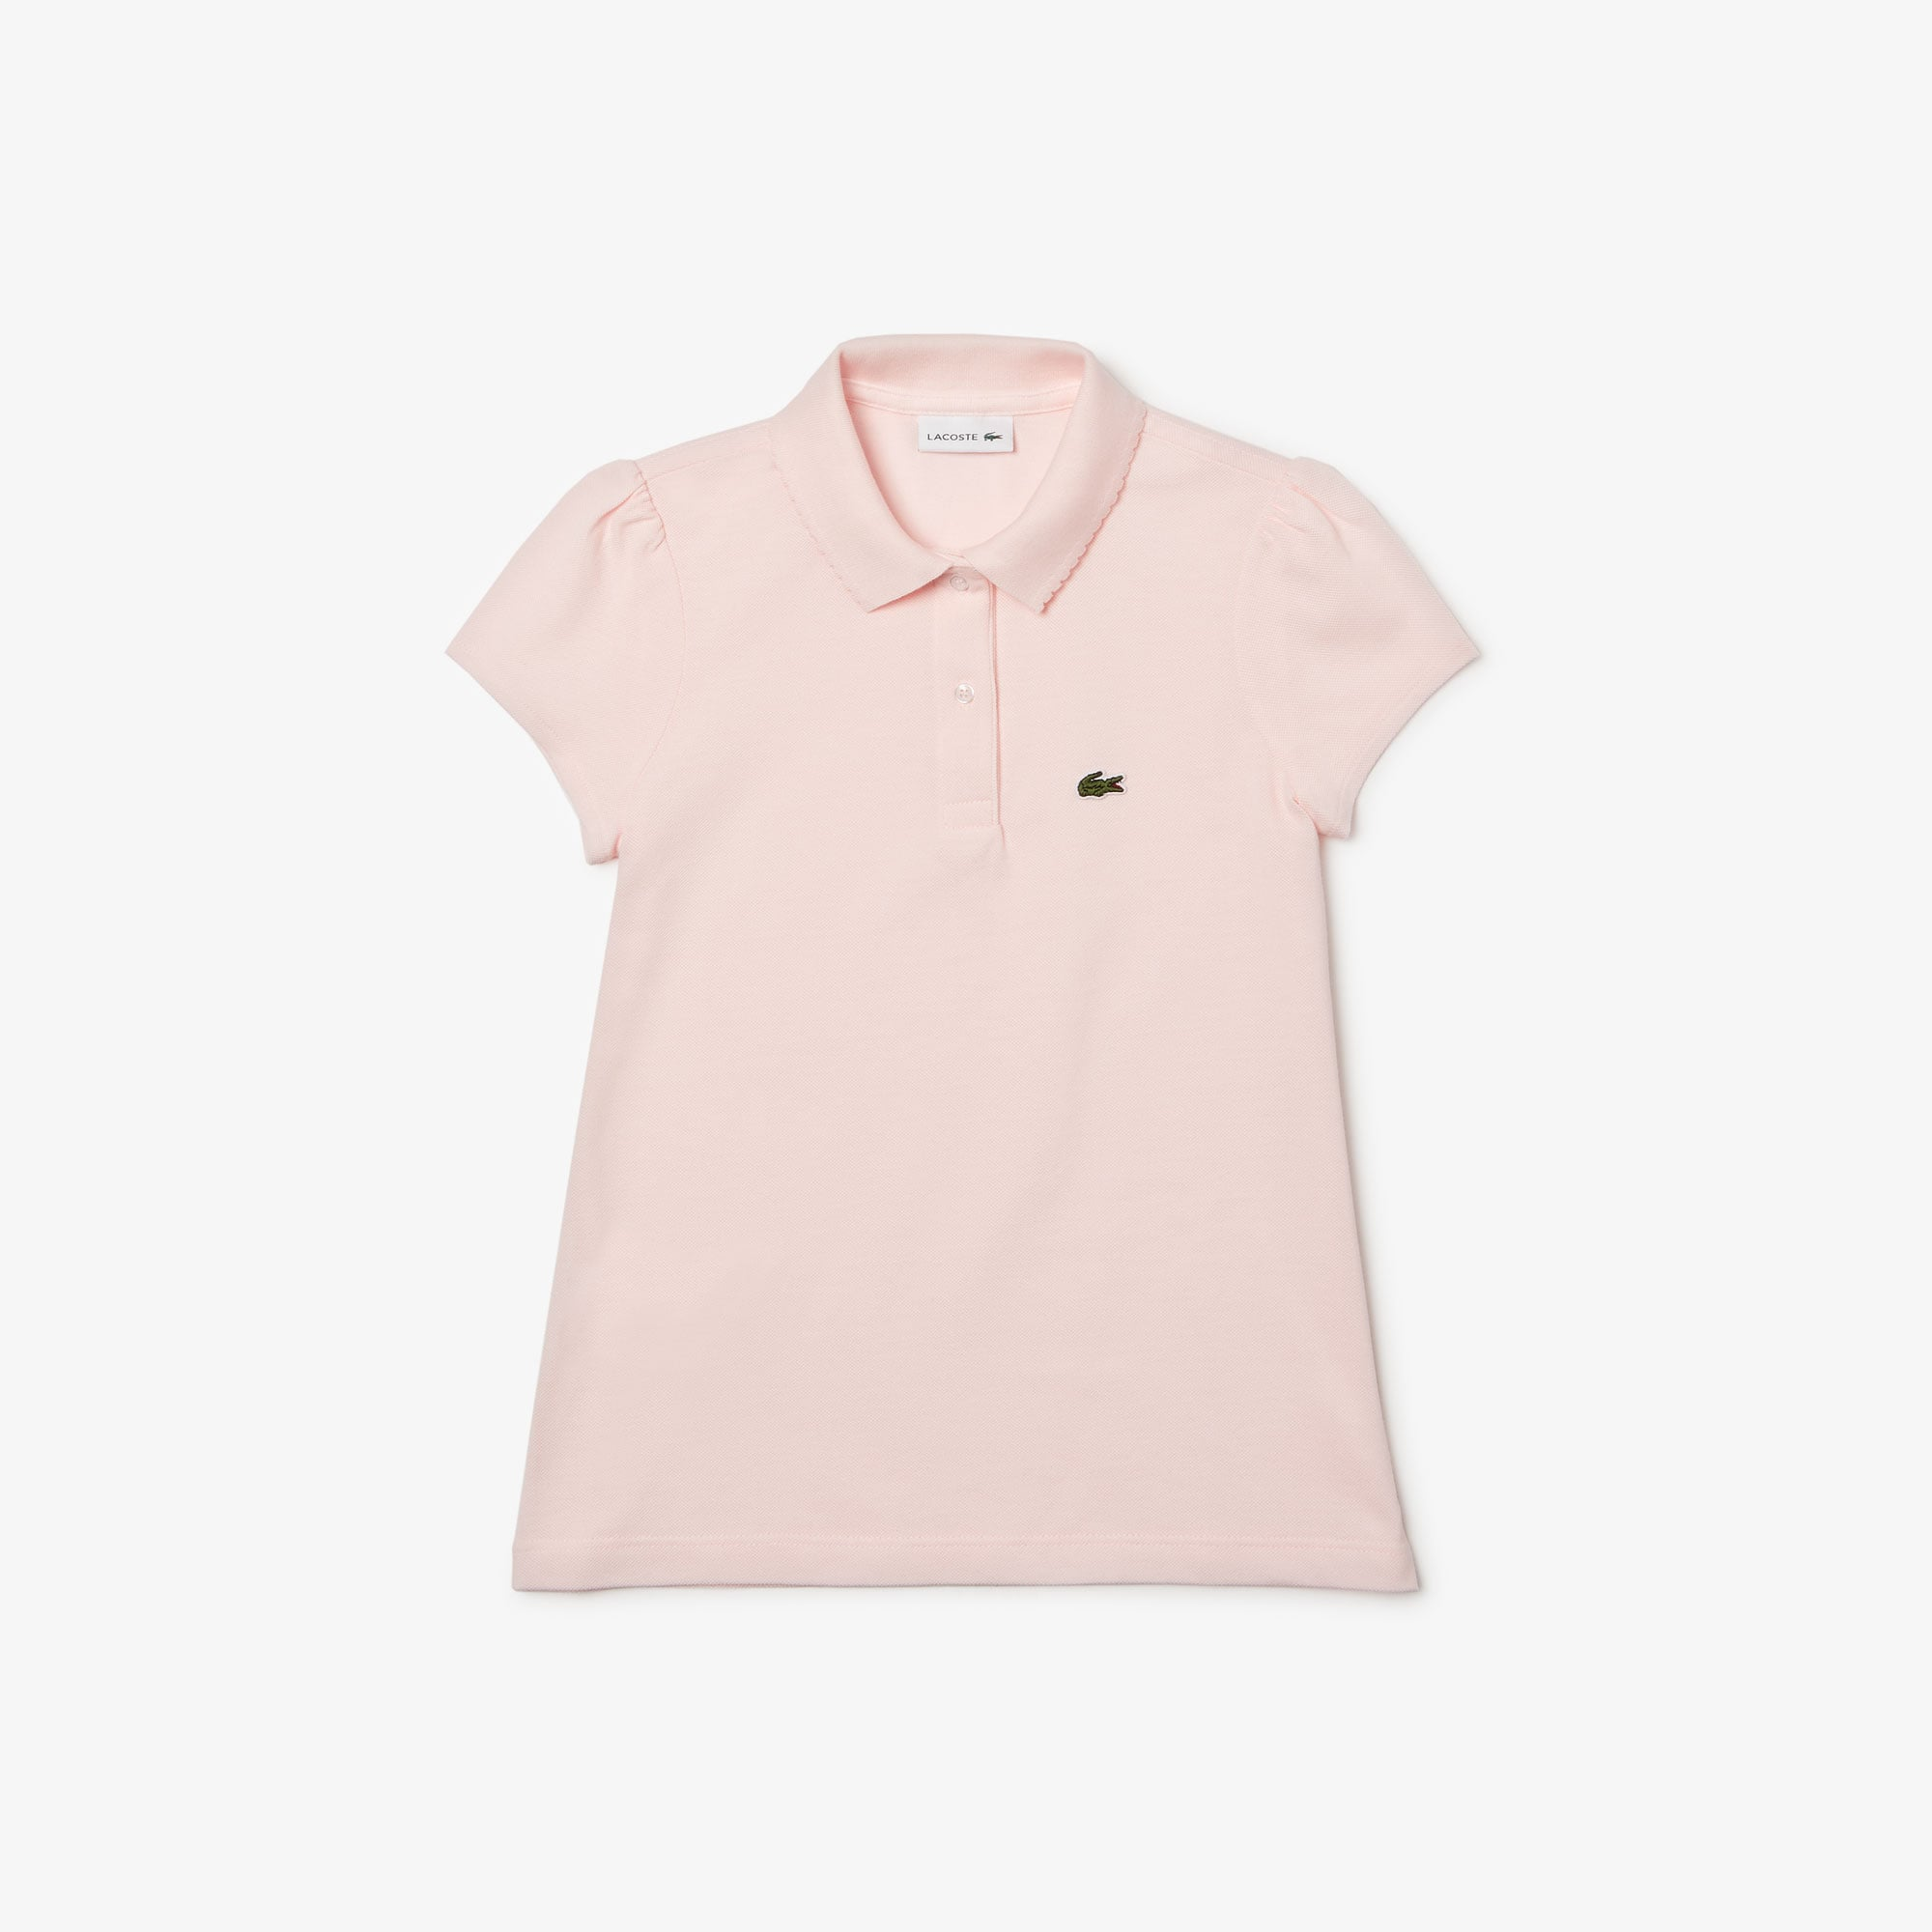 6ee457cb6 Girls  Lacoste Scalloped Collar Mini Piqué Polo Shirt · + 3 colors